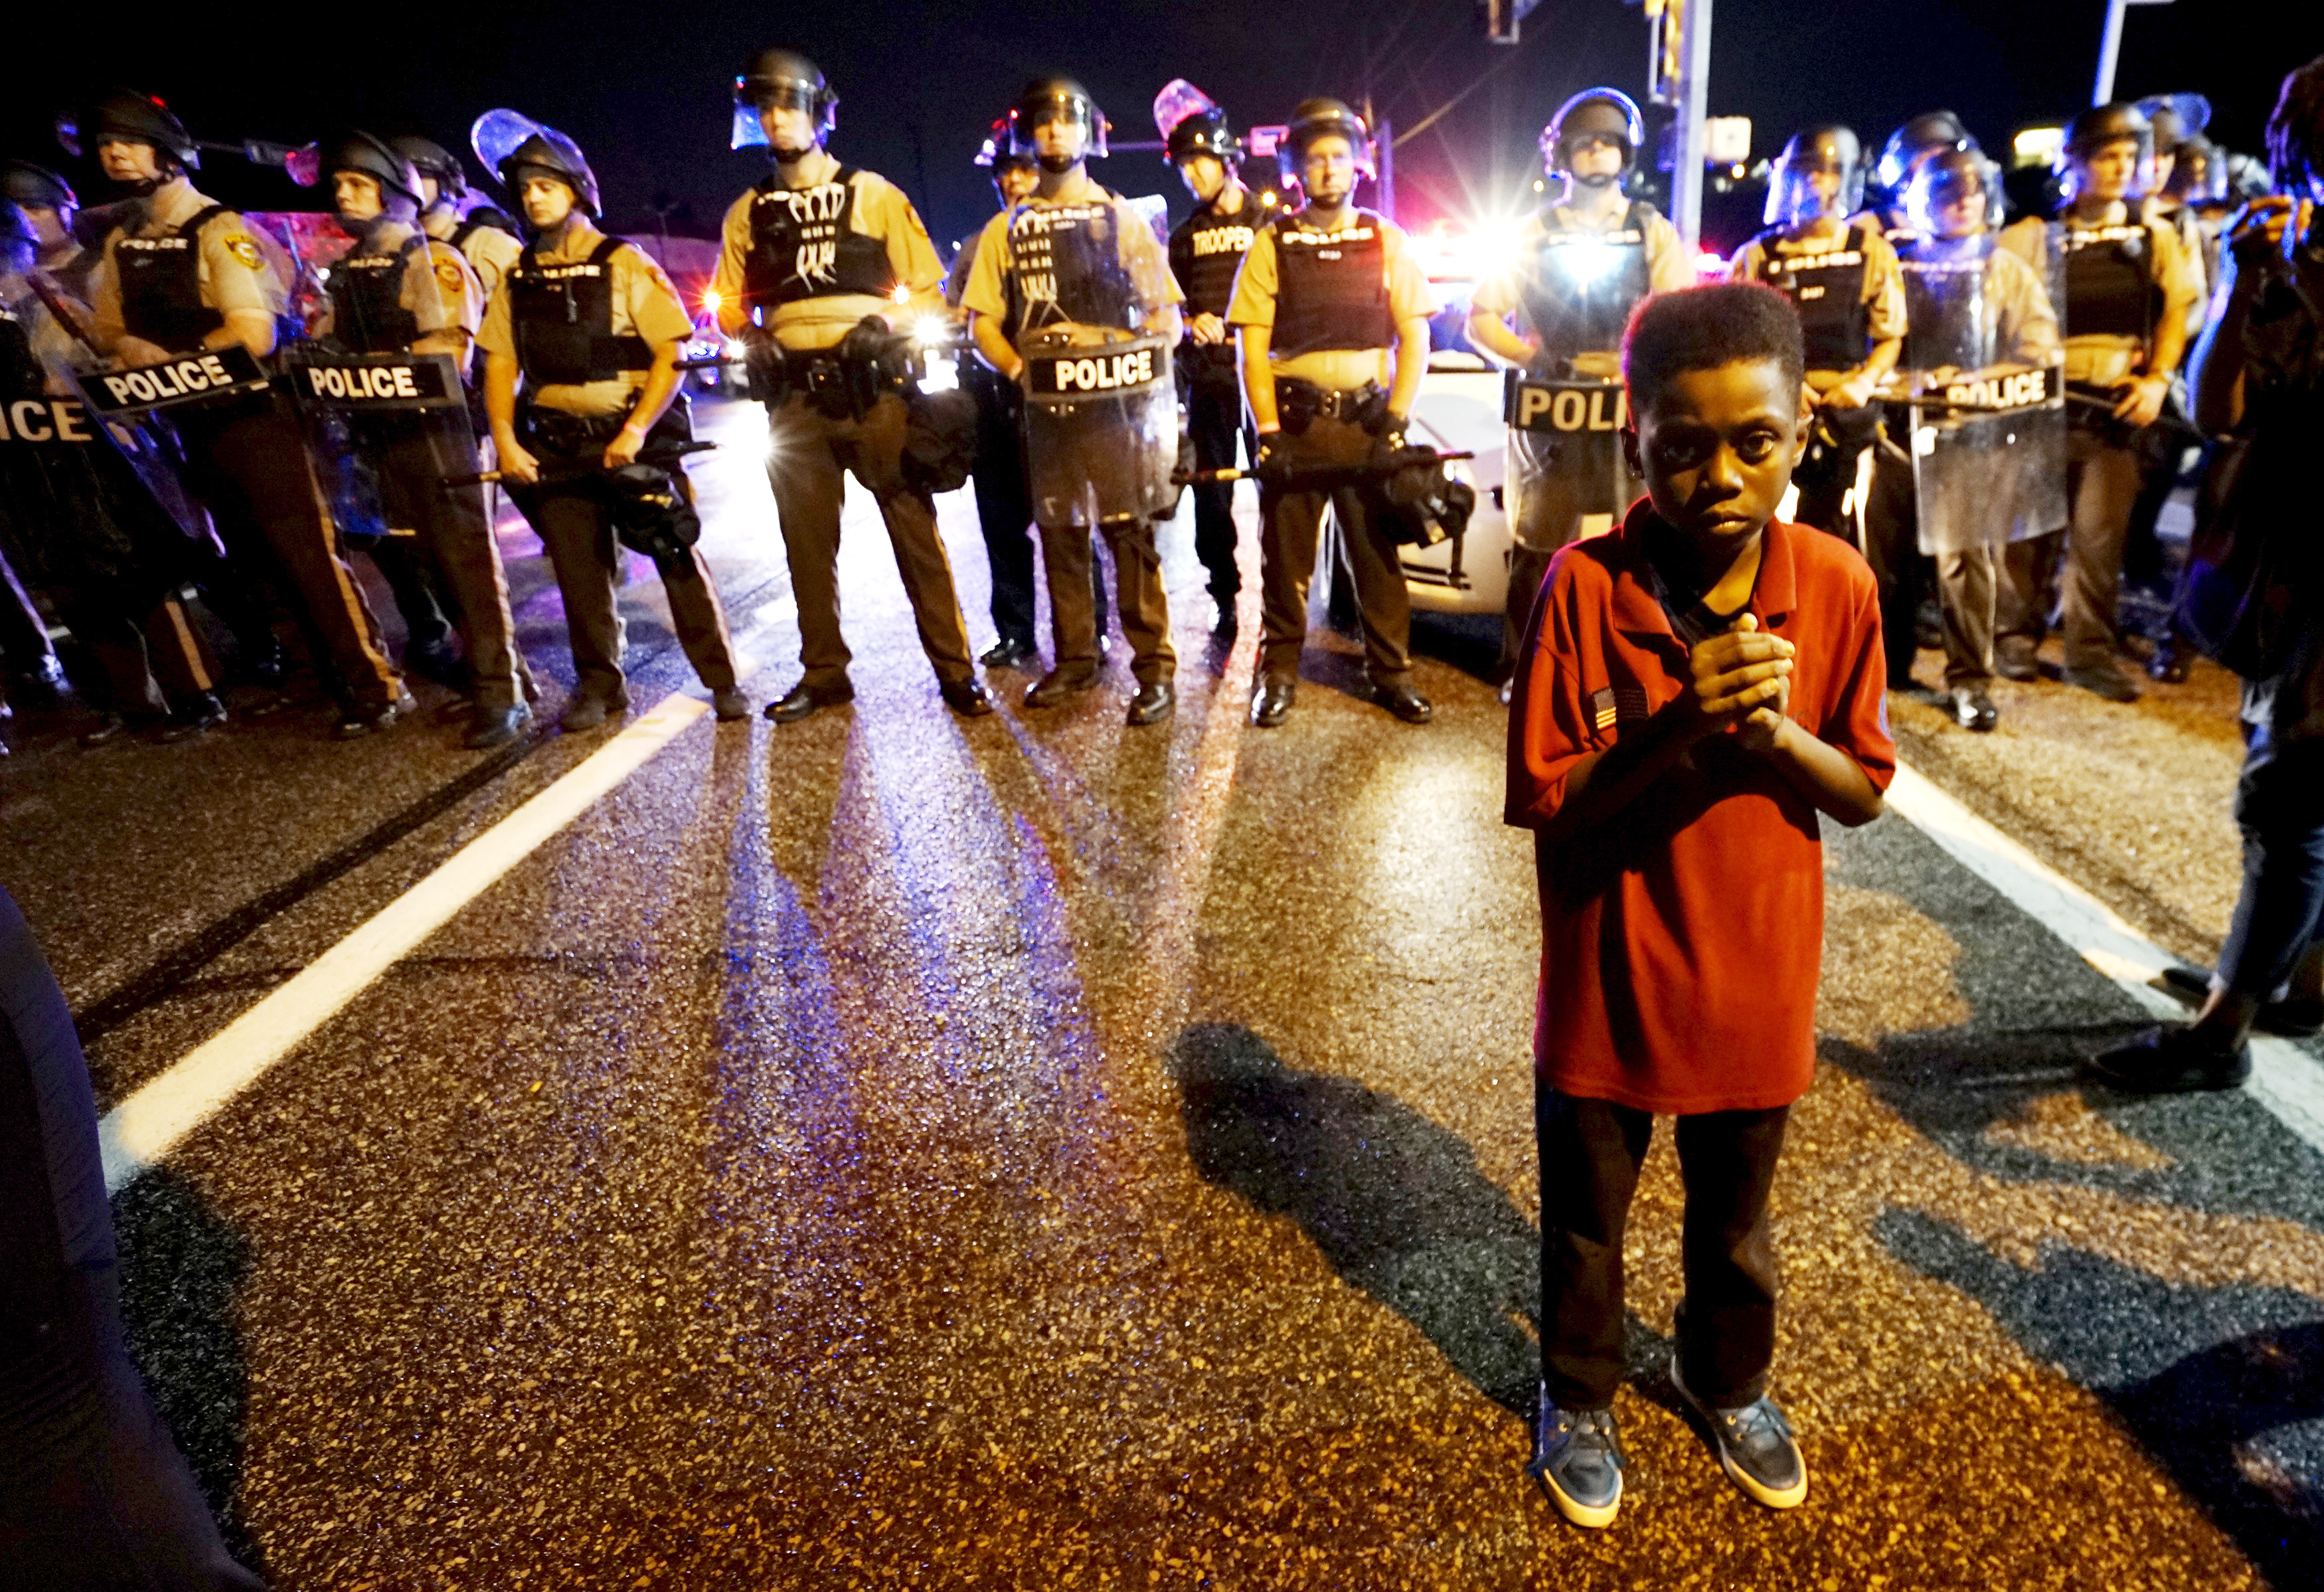 <p>Amarion Allen, 11-years-old, stands shivering in fear in the 90 degree heat with his mother protesting nearby in front of a police line shortly before shots were fired in a police-officer involved shooting in Ferguson, Missouri August 9, 2015.</p>